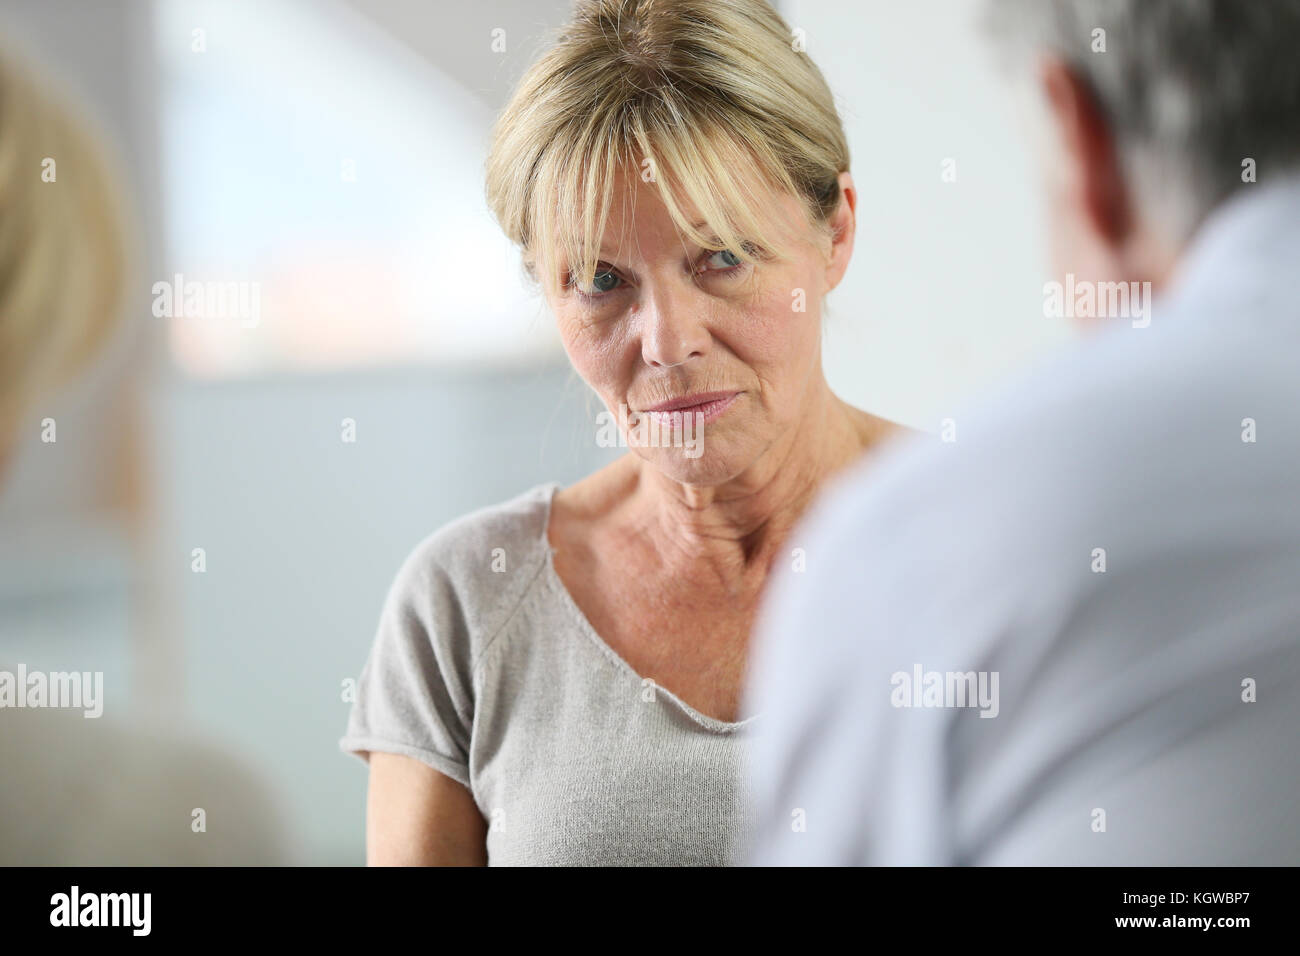 Senior woman attending group therapy - Stock Image